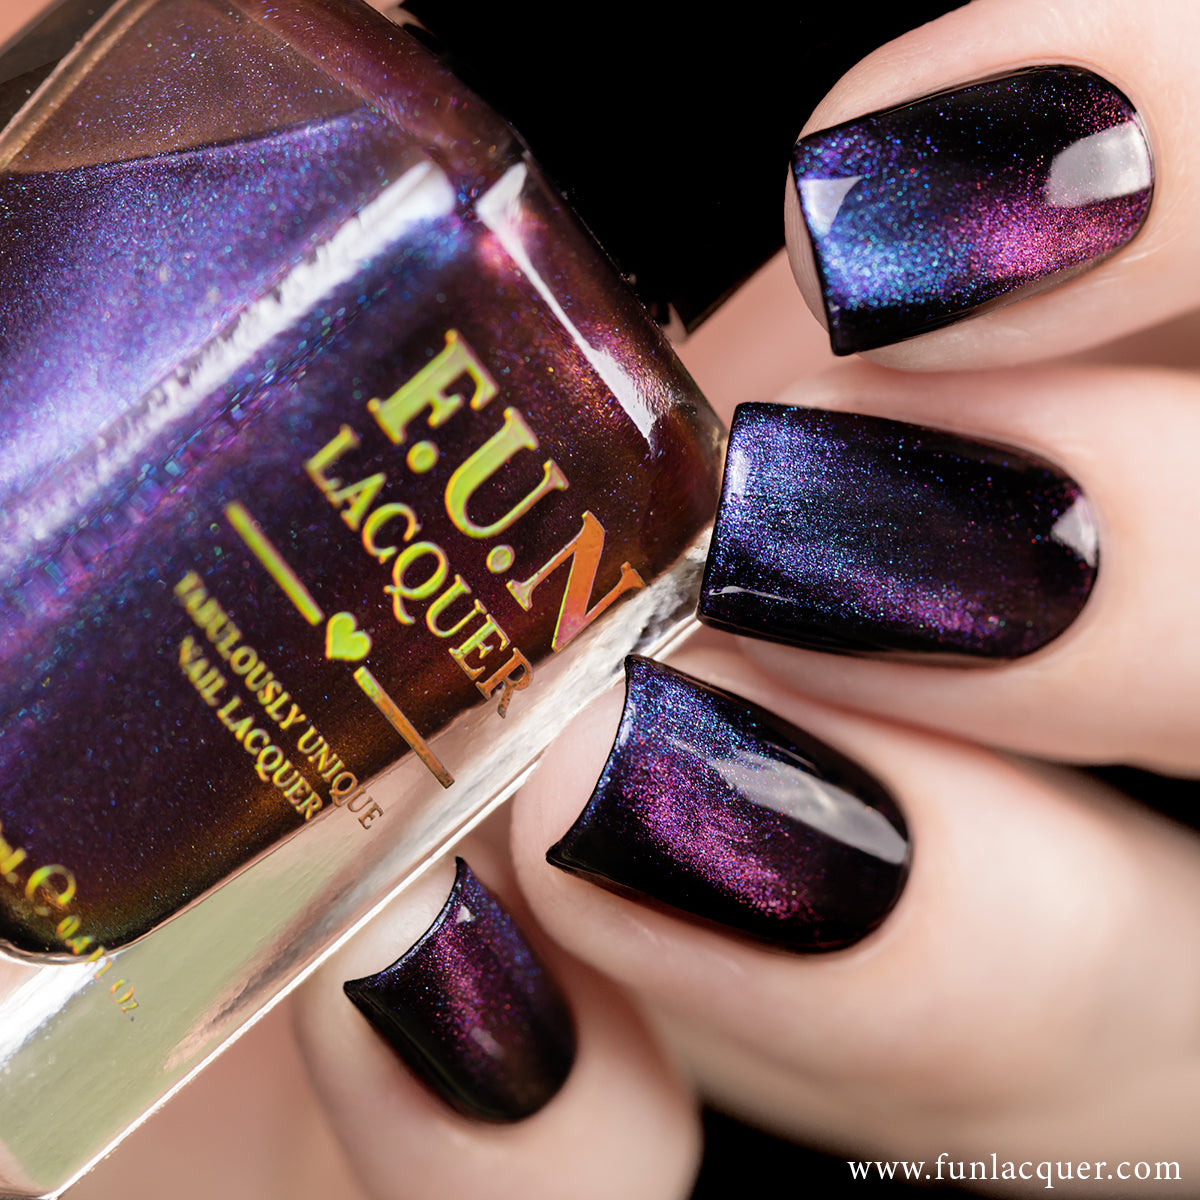 *PRE-ORDER* F.U.N Lacquer - Marvellous